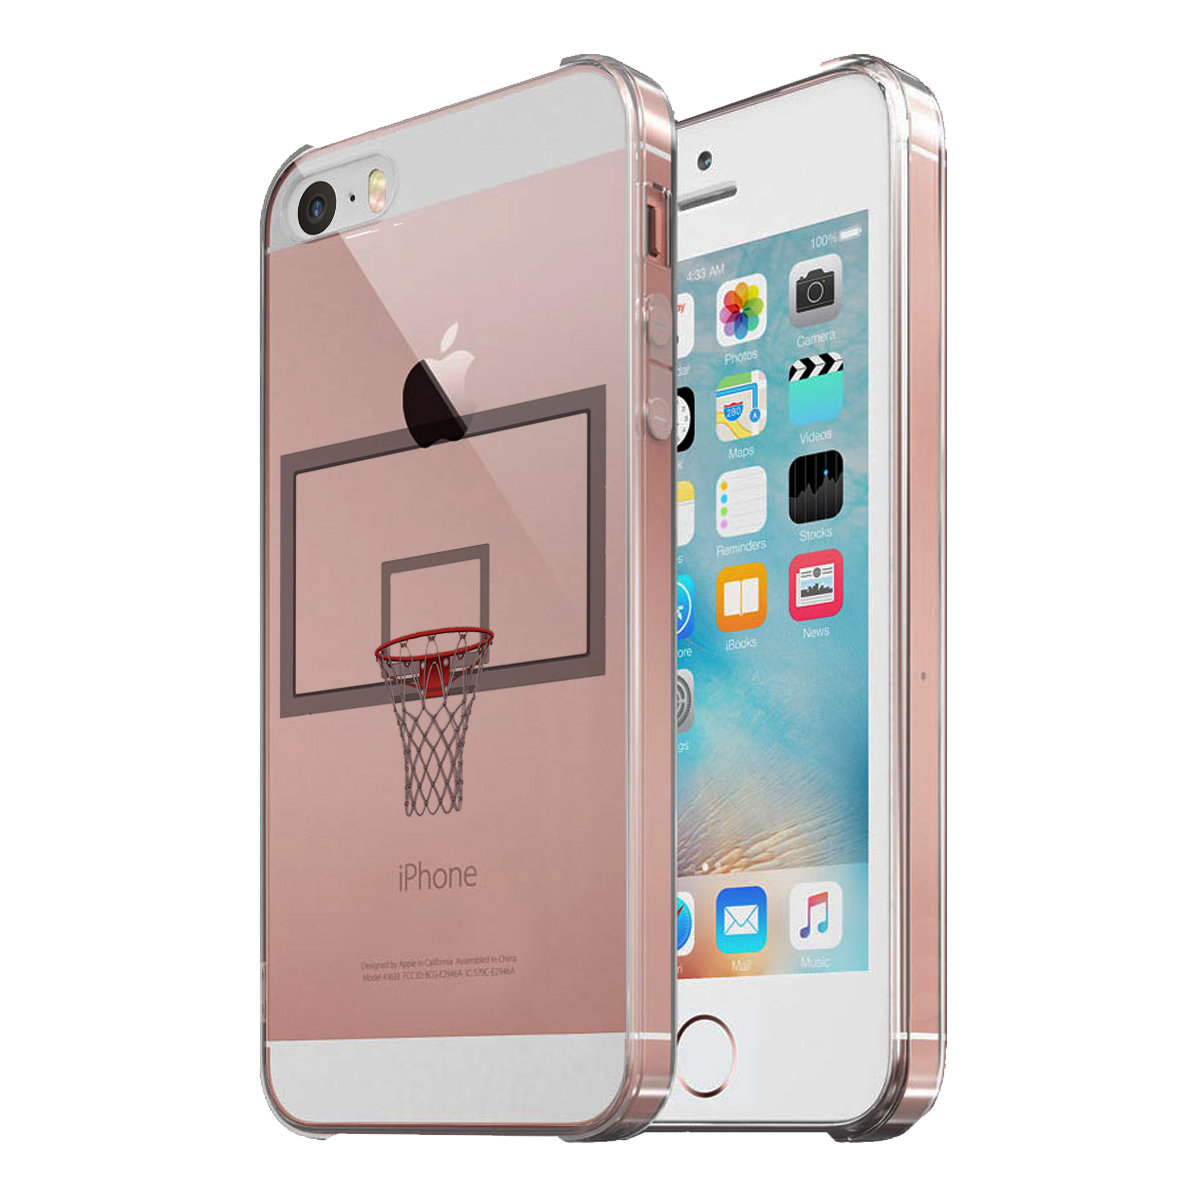 KuzmarK Clear Cover Case fits iPhone SE & iPhone 5 - Basketball Hoop